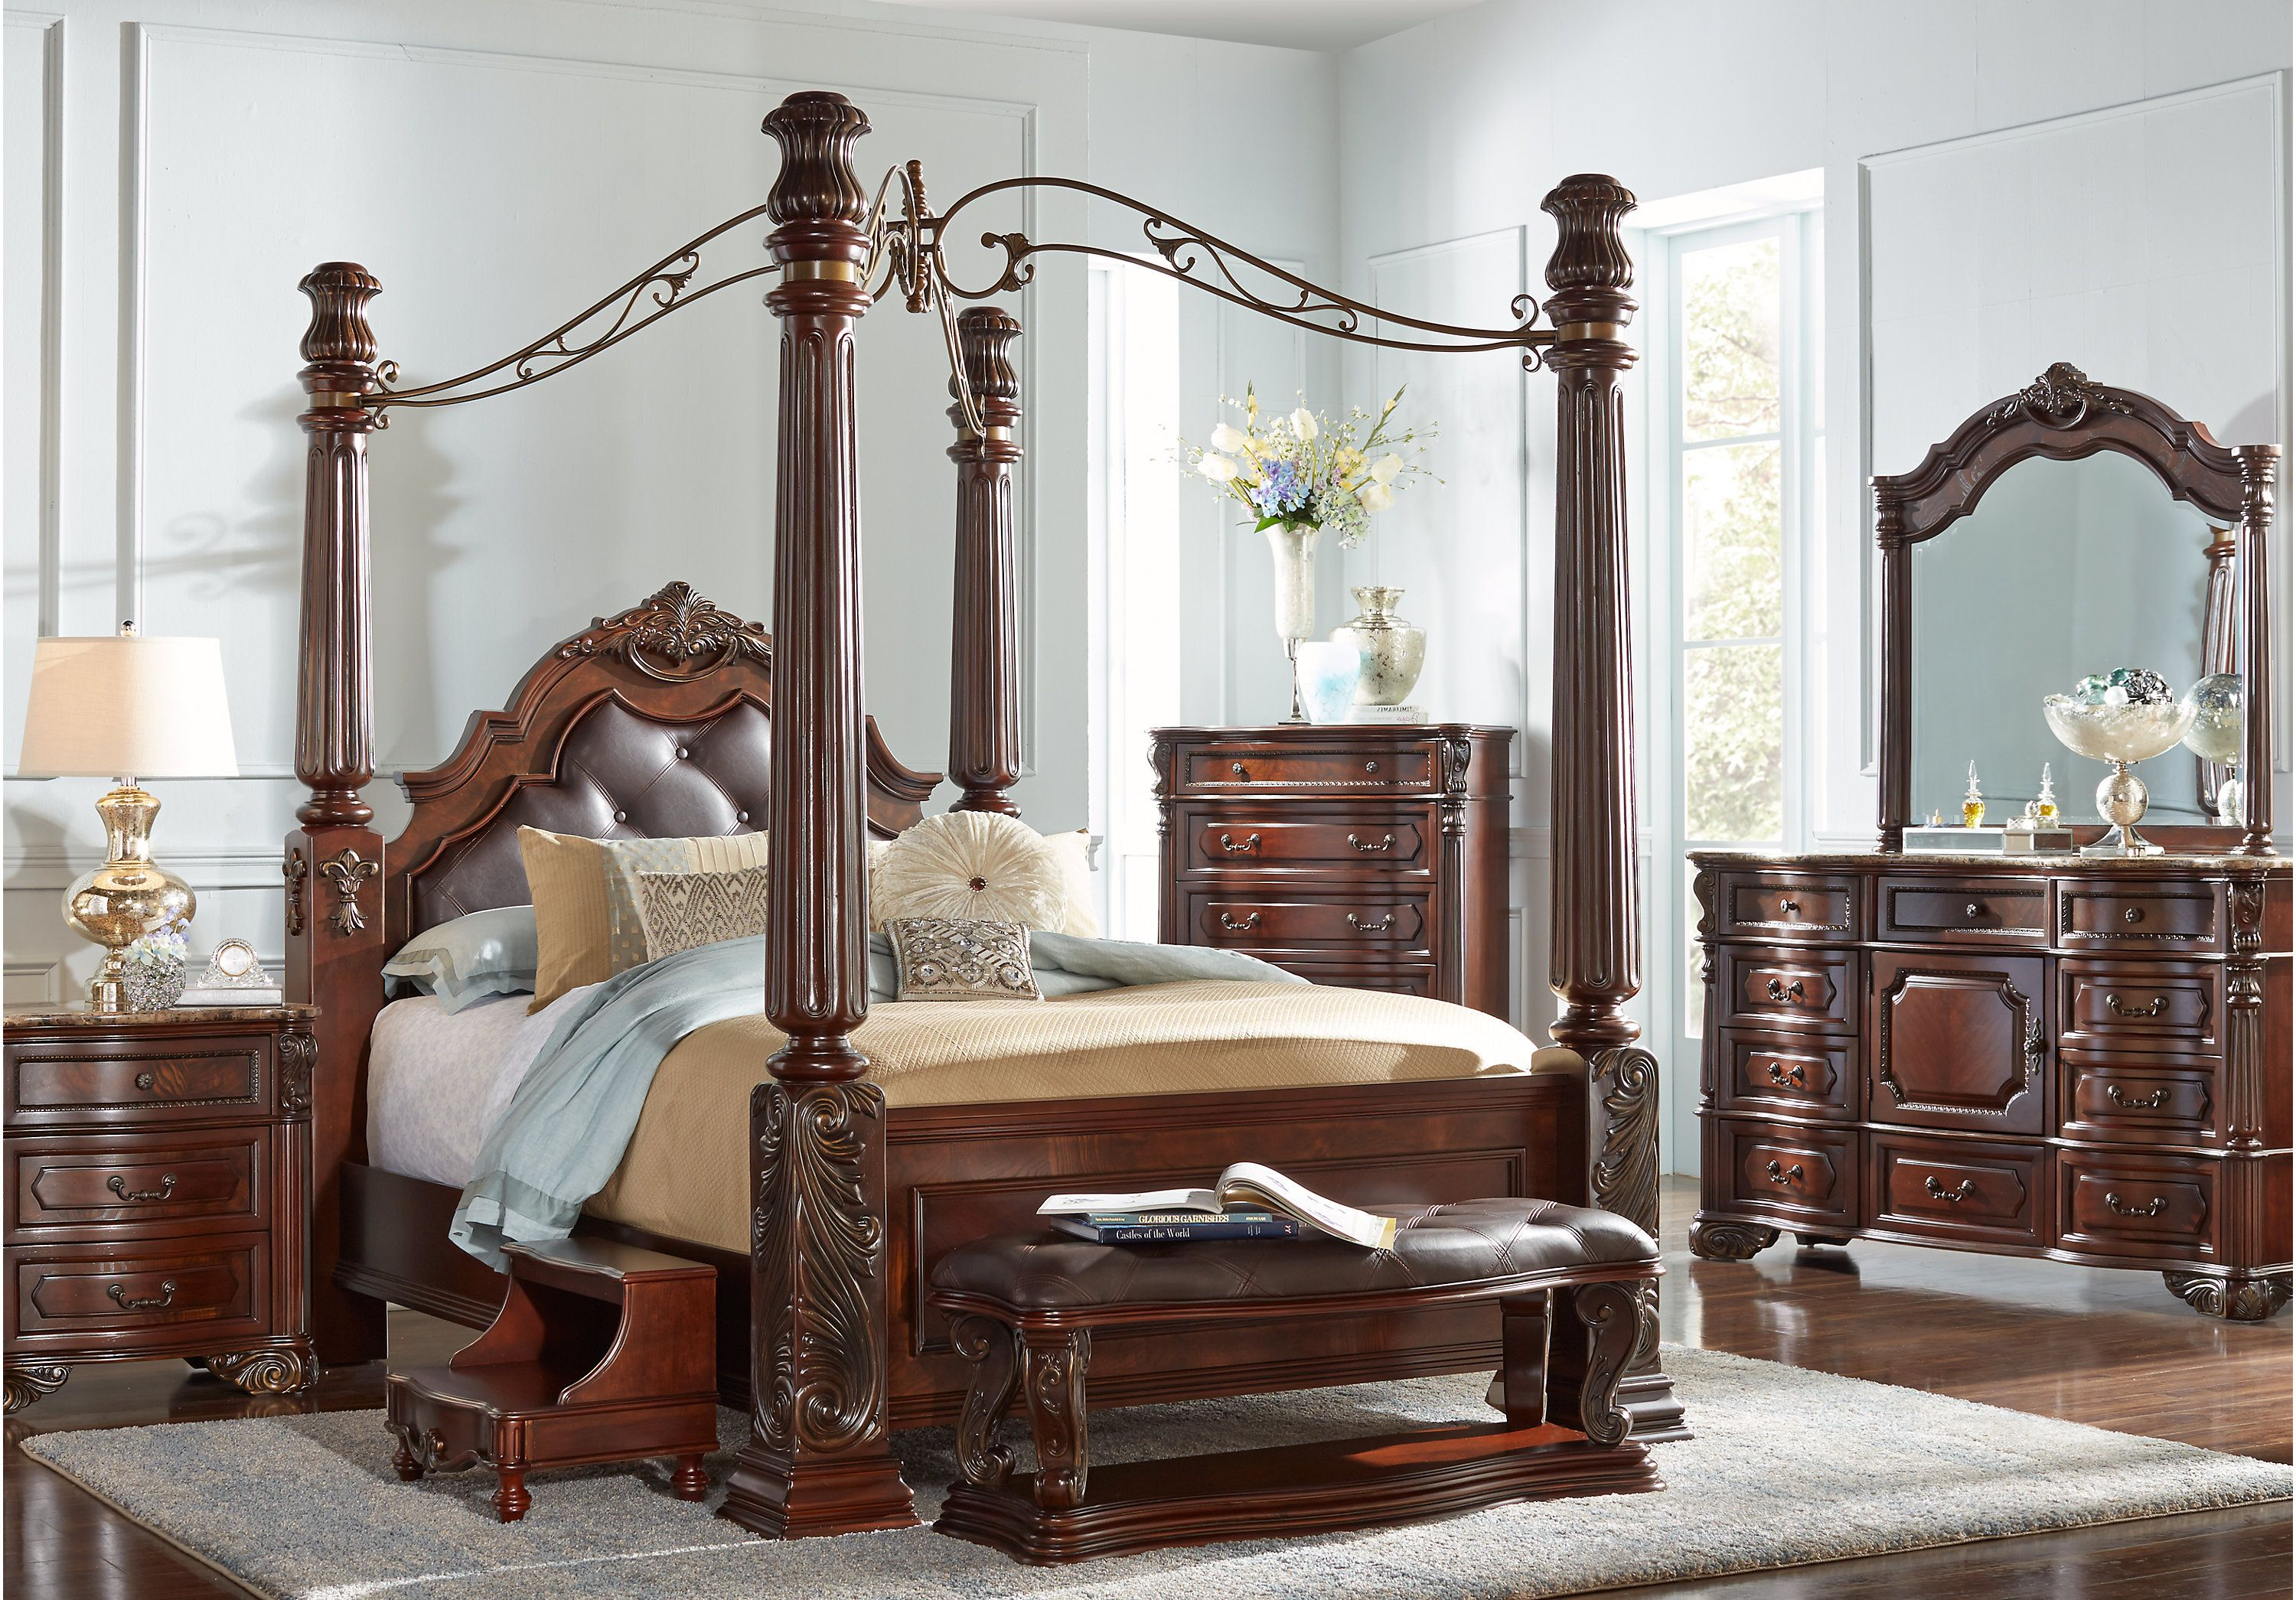 Southampton Walnut 6 Pc King Canopy Bedroom | Master room ...